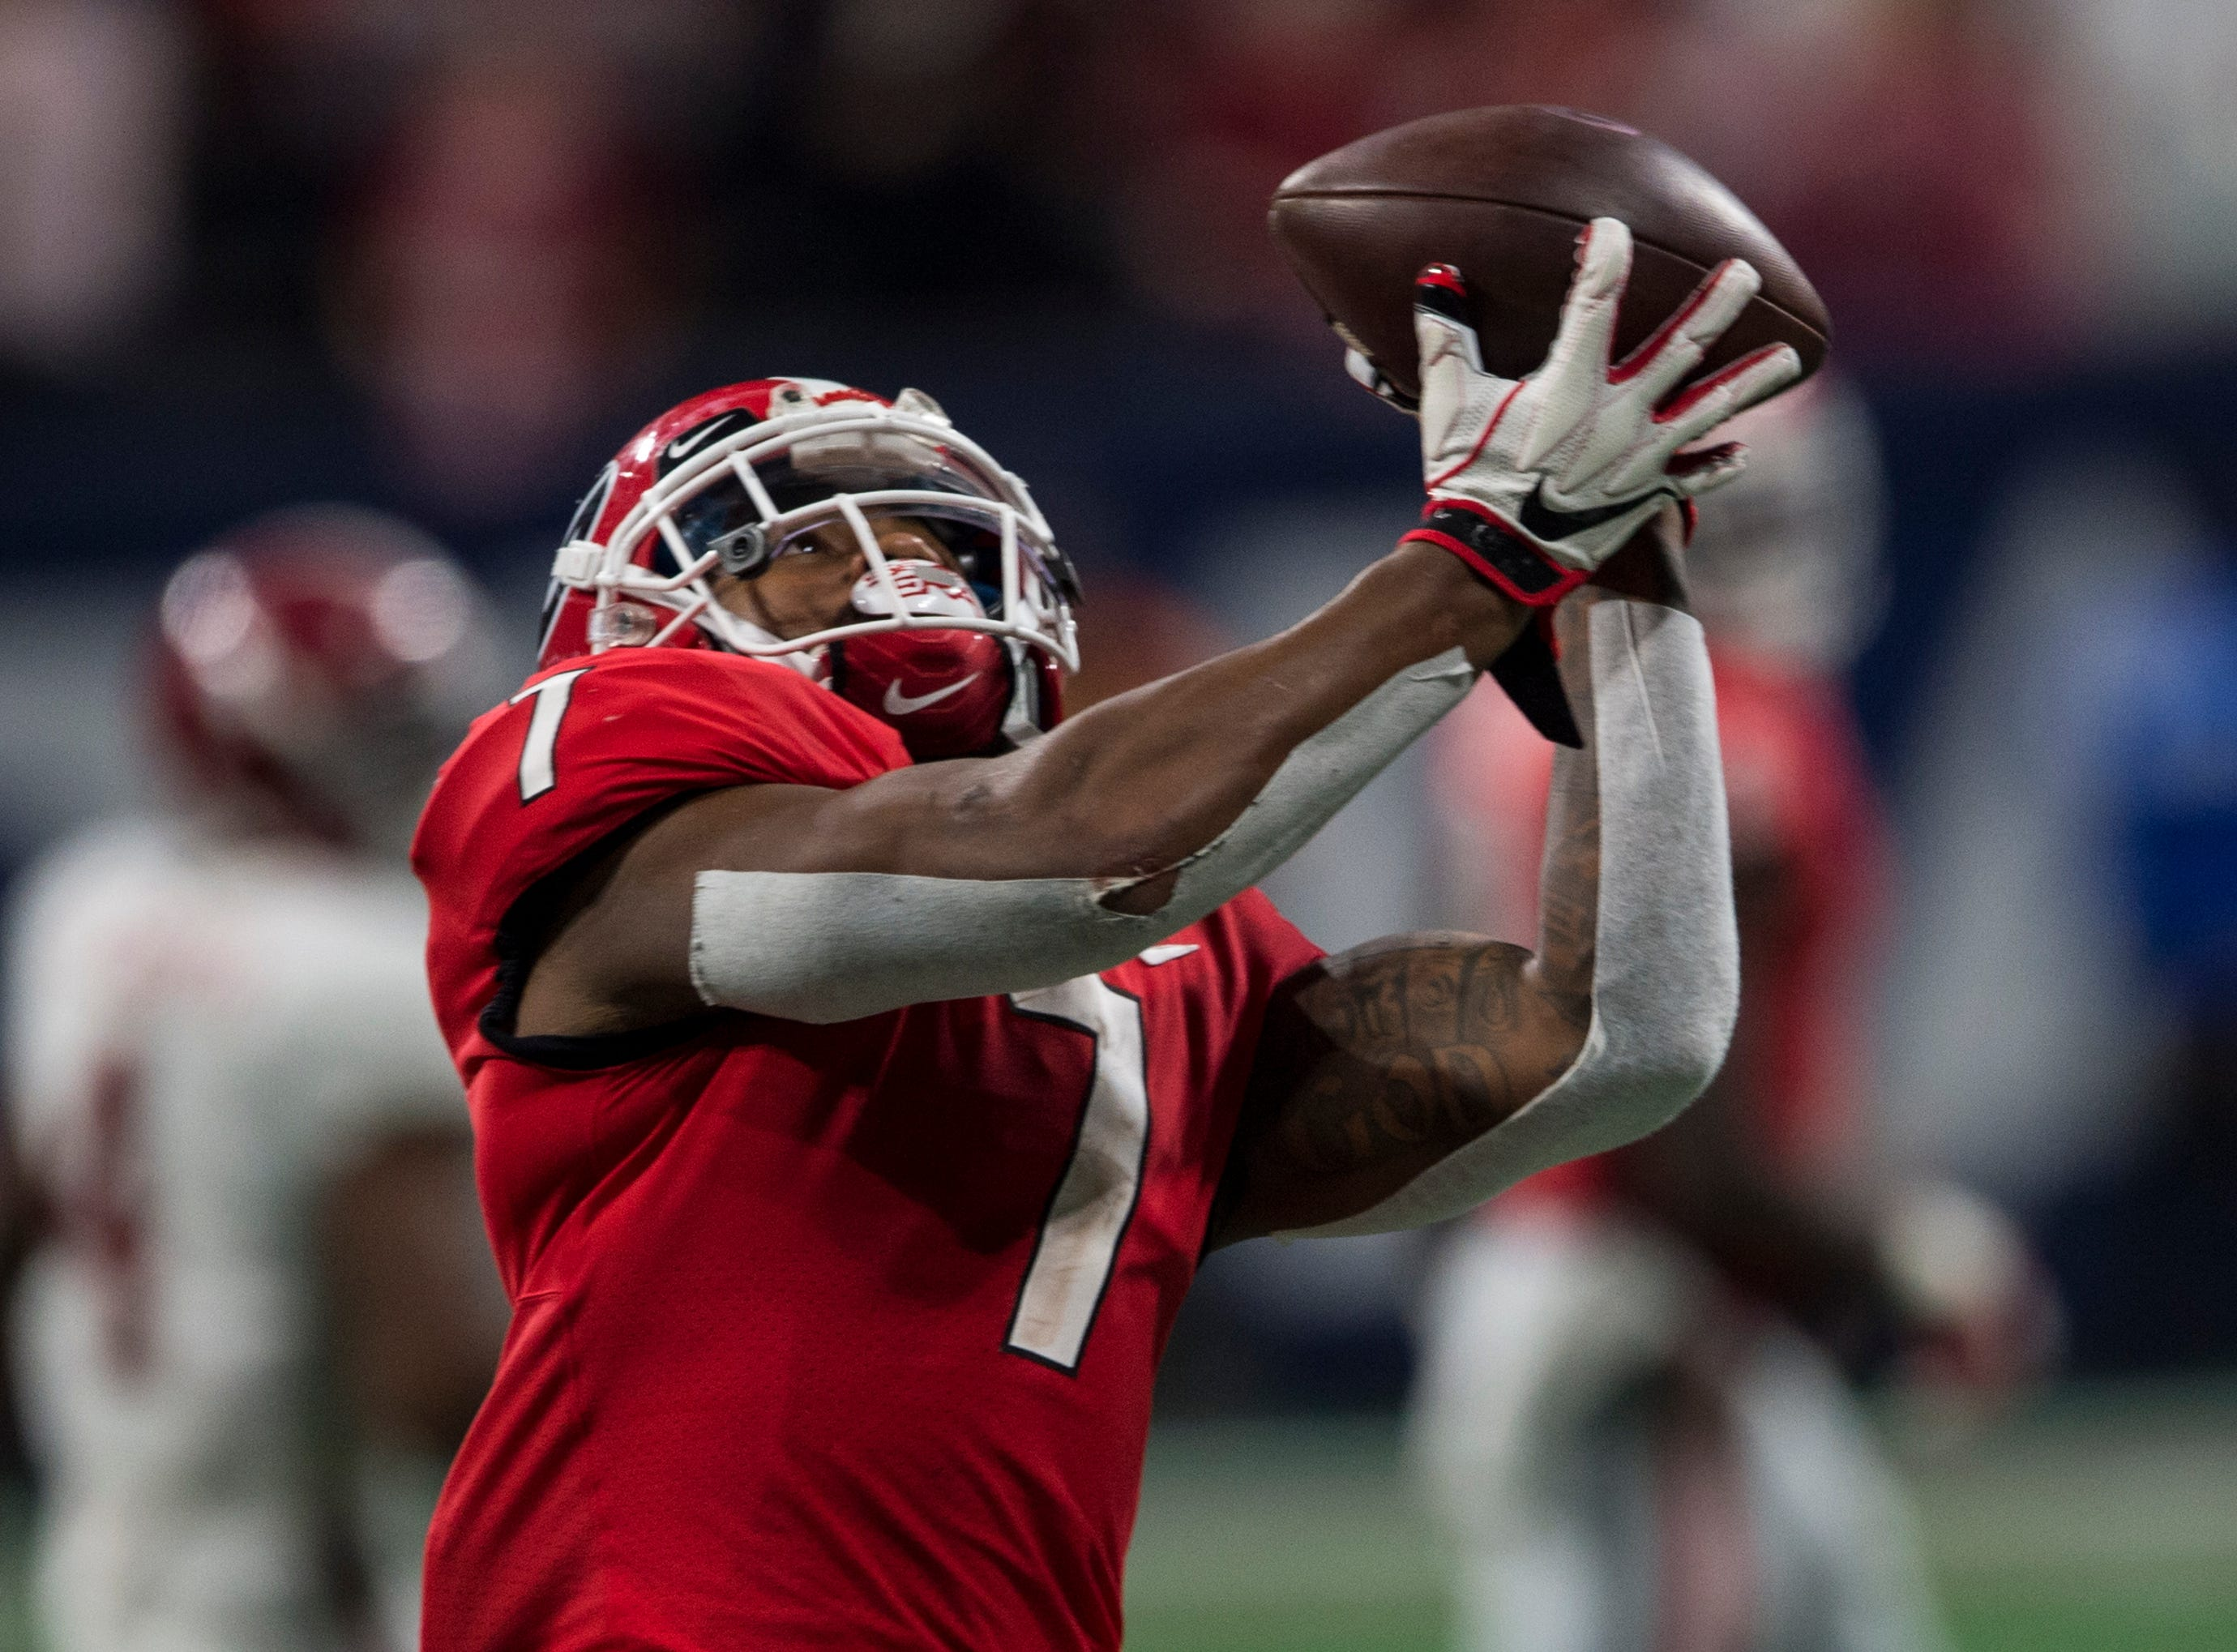 Georgia running back D'Andre Swift (7) catches a pass against Alabama during the SEC Championship game at Mercedes-Benz Stadium in Atlanta, Ga., on Saturday Dec. 1, 2018. Alabama defeated Georgia 35-28.